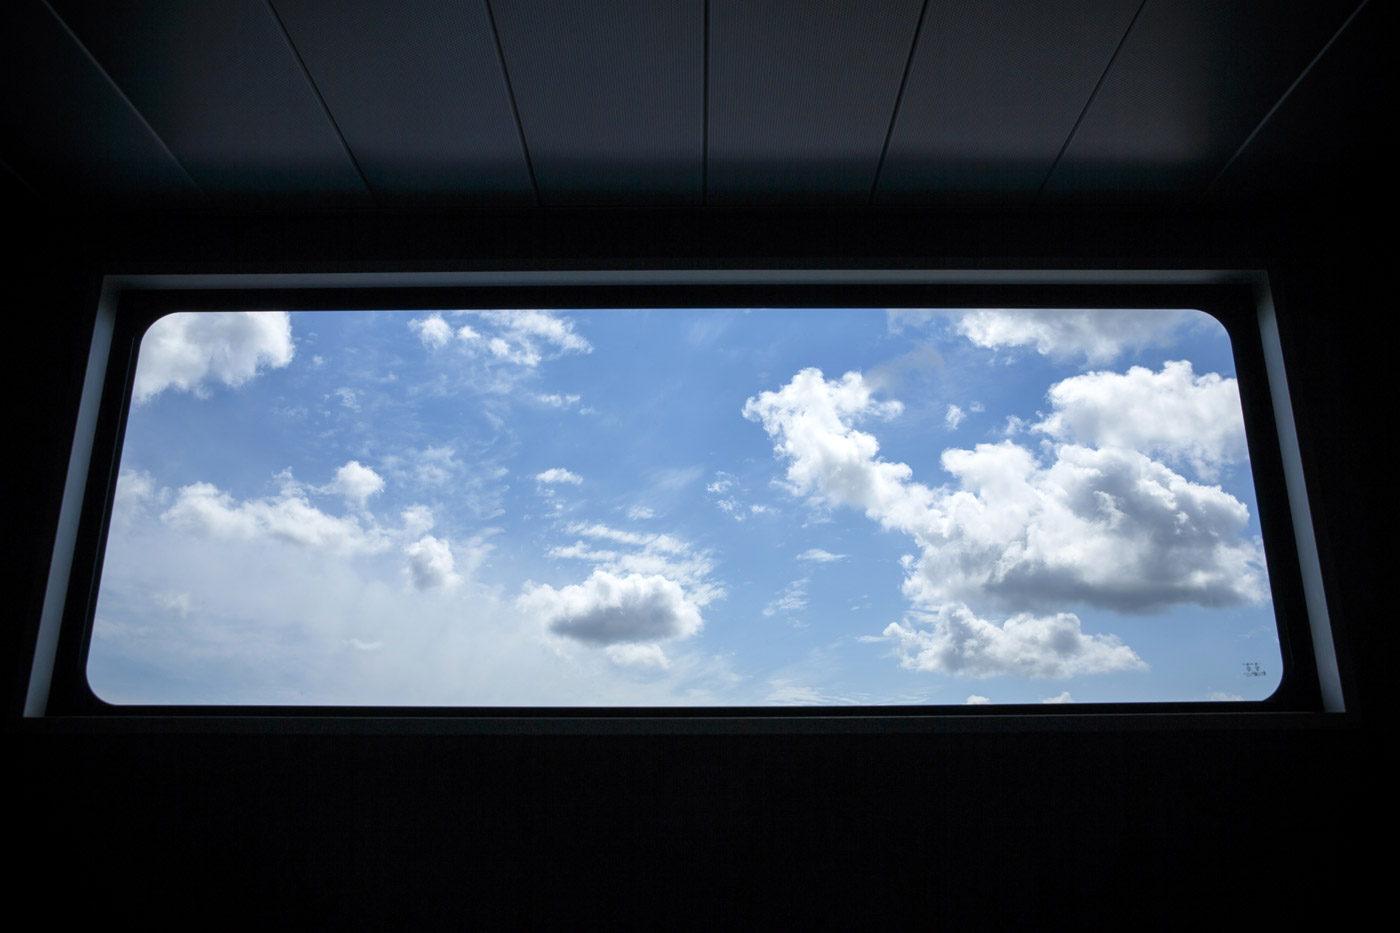 <p>Watching the clouds go by.</p>